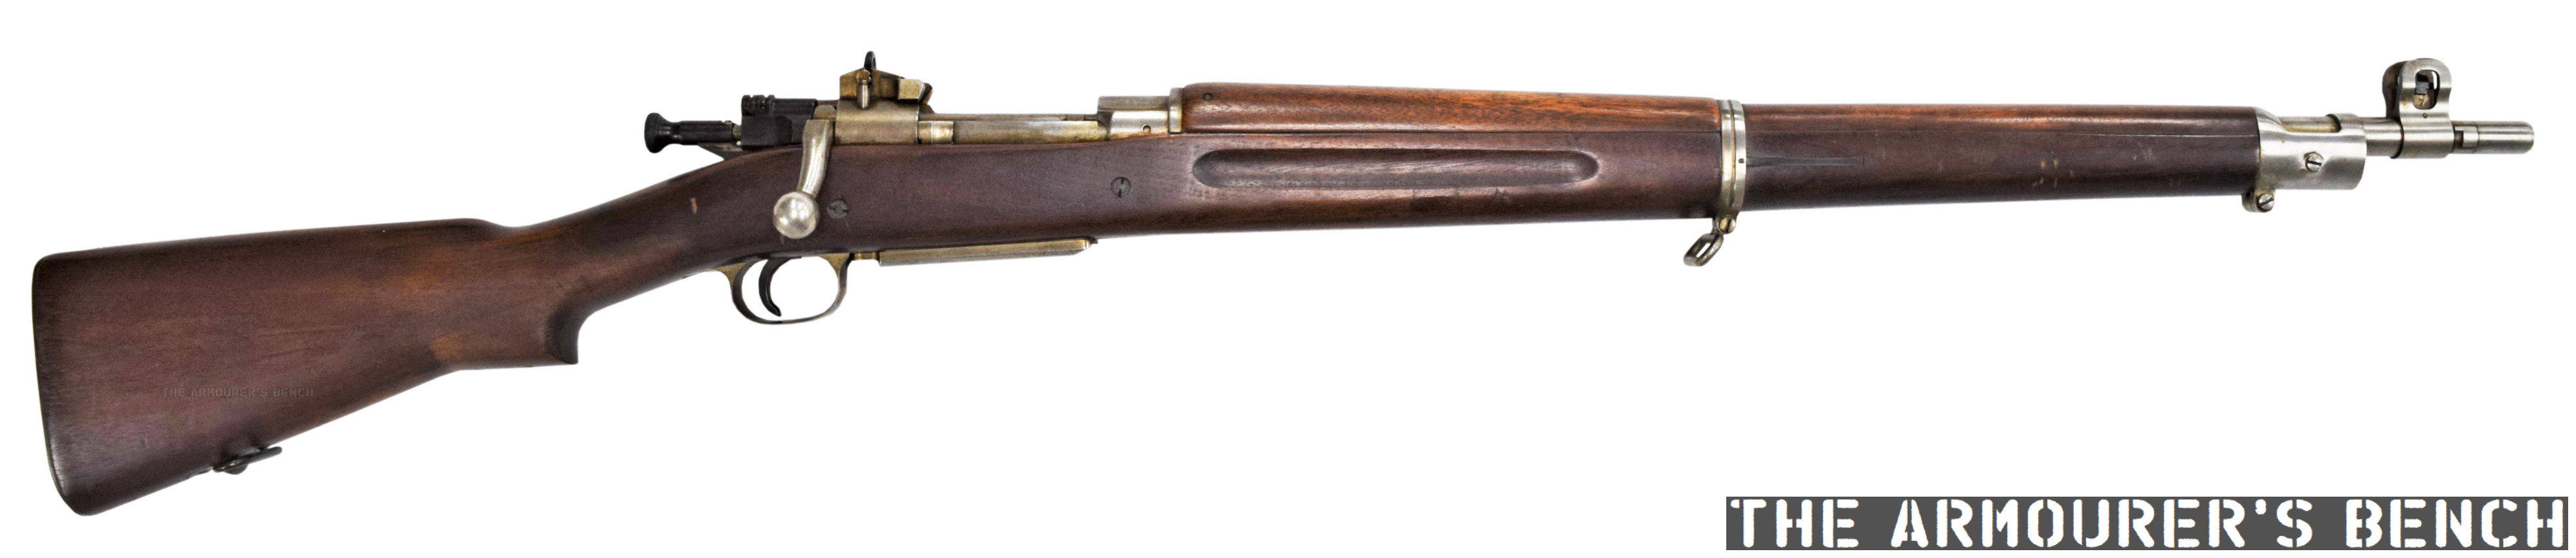 remington_1903_303_rightwm